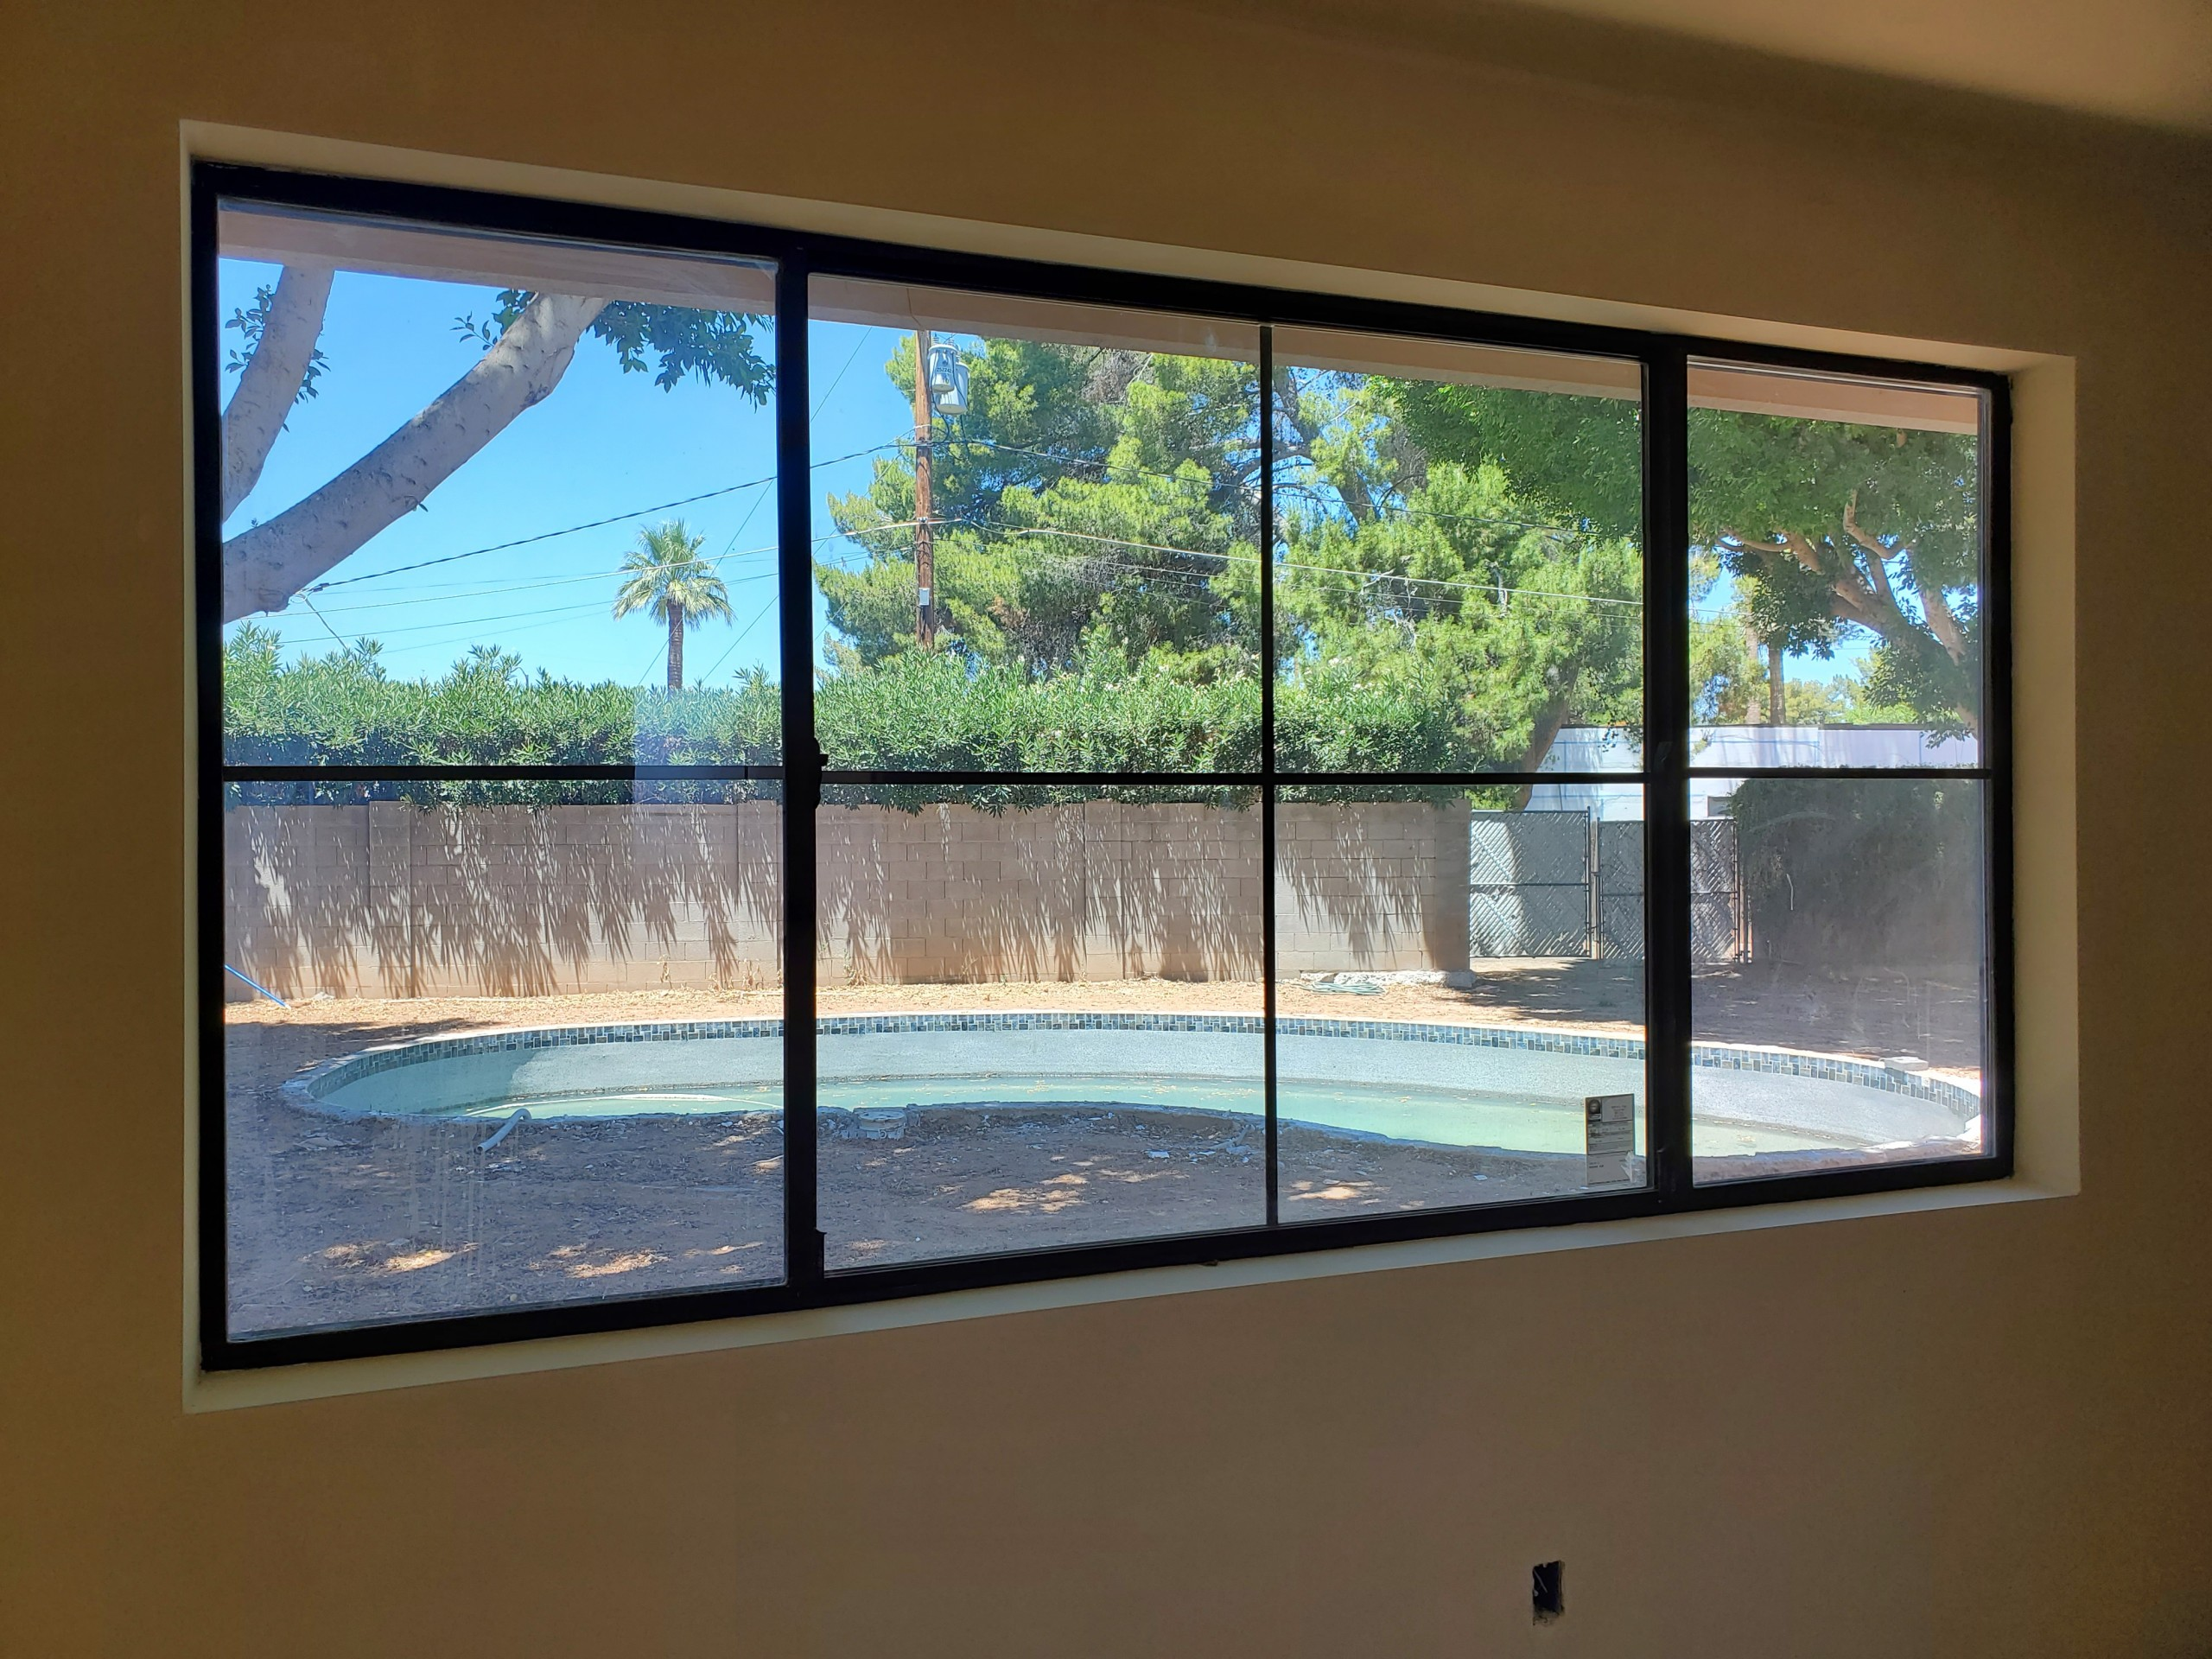 Arizona Window and Door in Scottsdale and Tucson showing black paneled windows